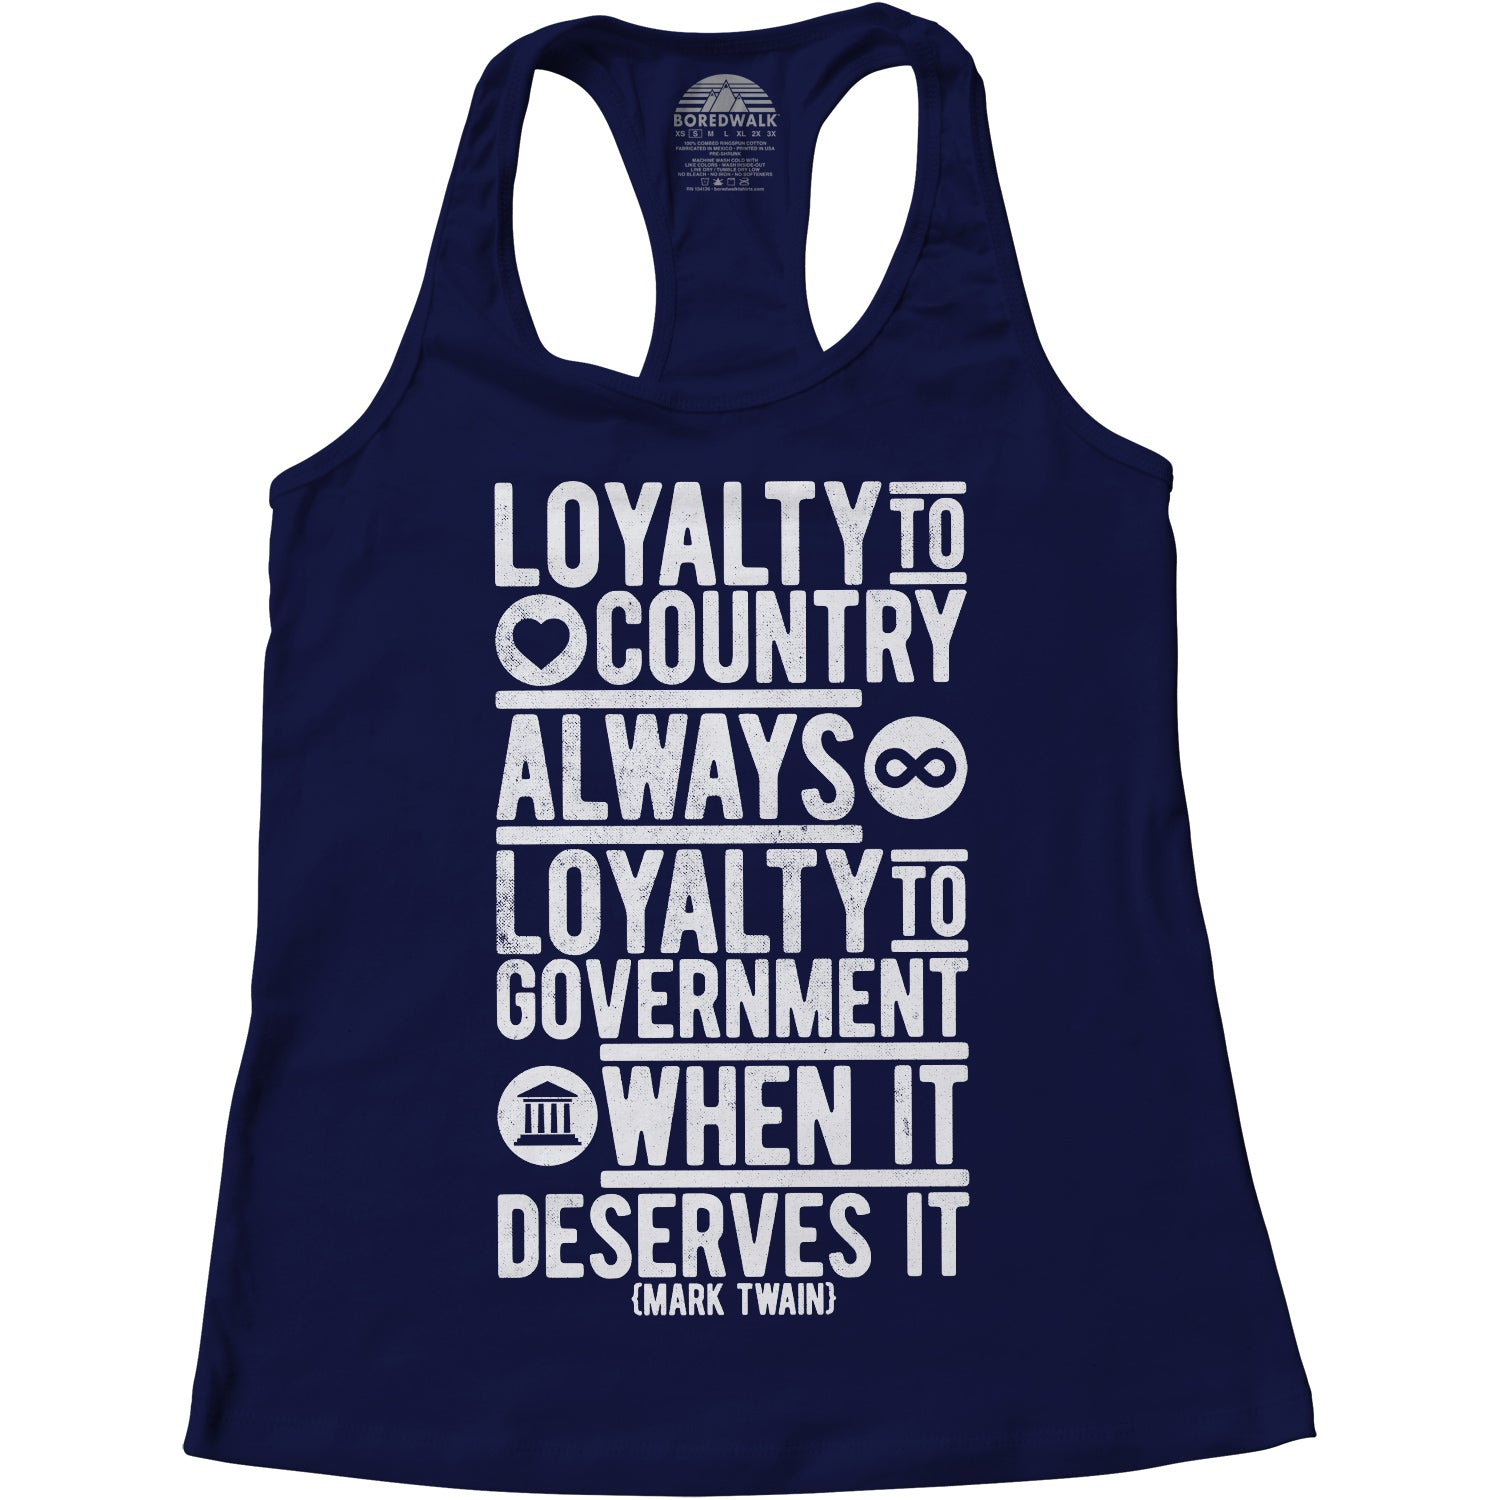 Women's Loyalty to Country Always Loyalty to Government When It Deserves It Mark Twain Quote Racerback Tank Top